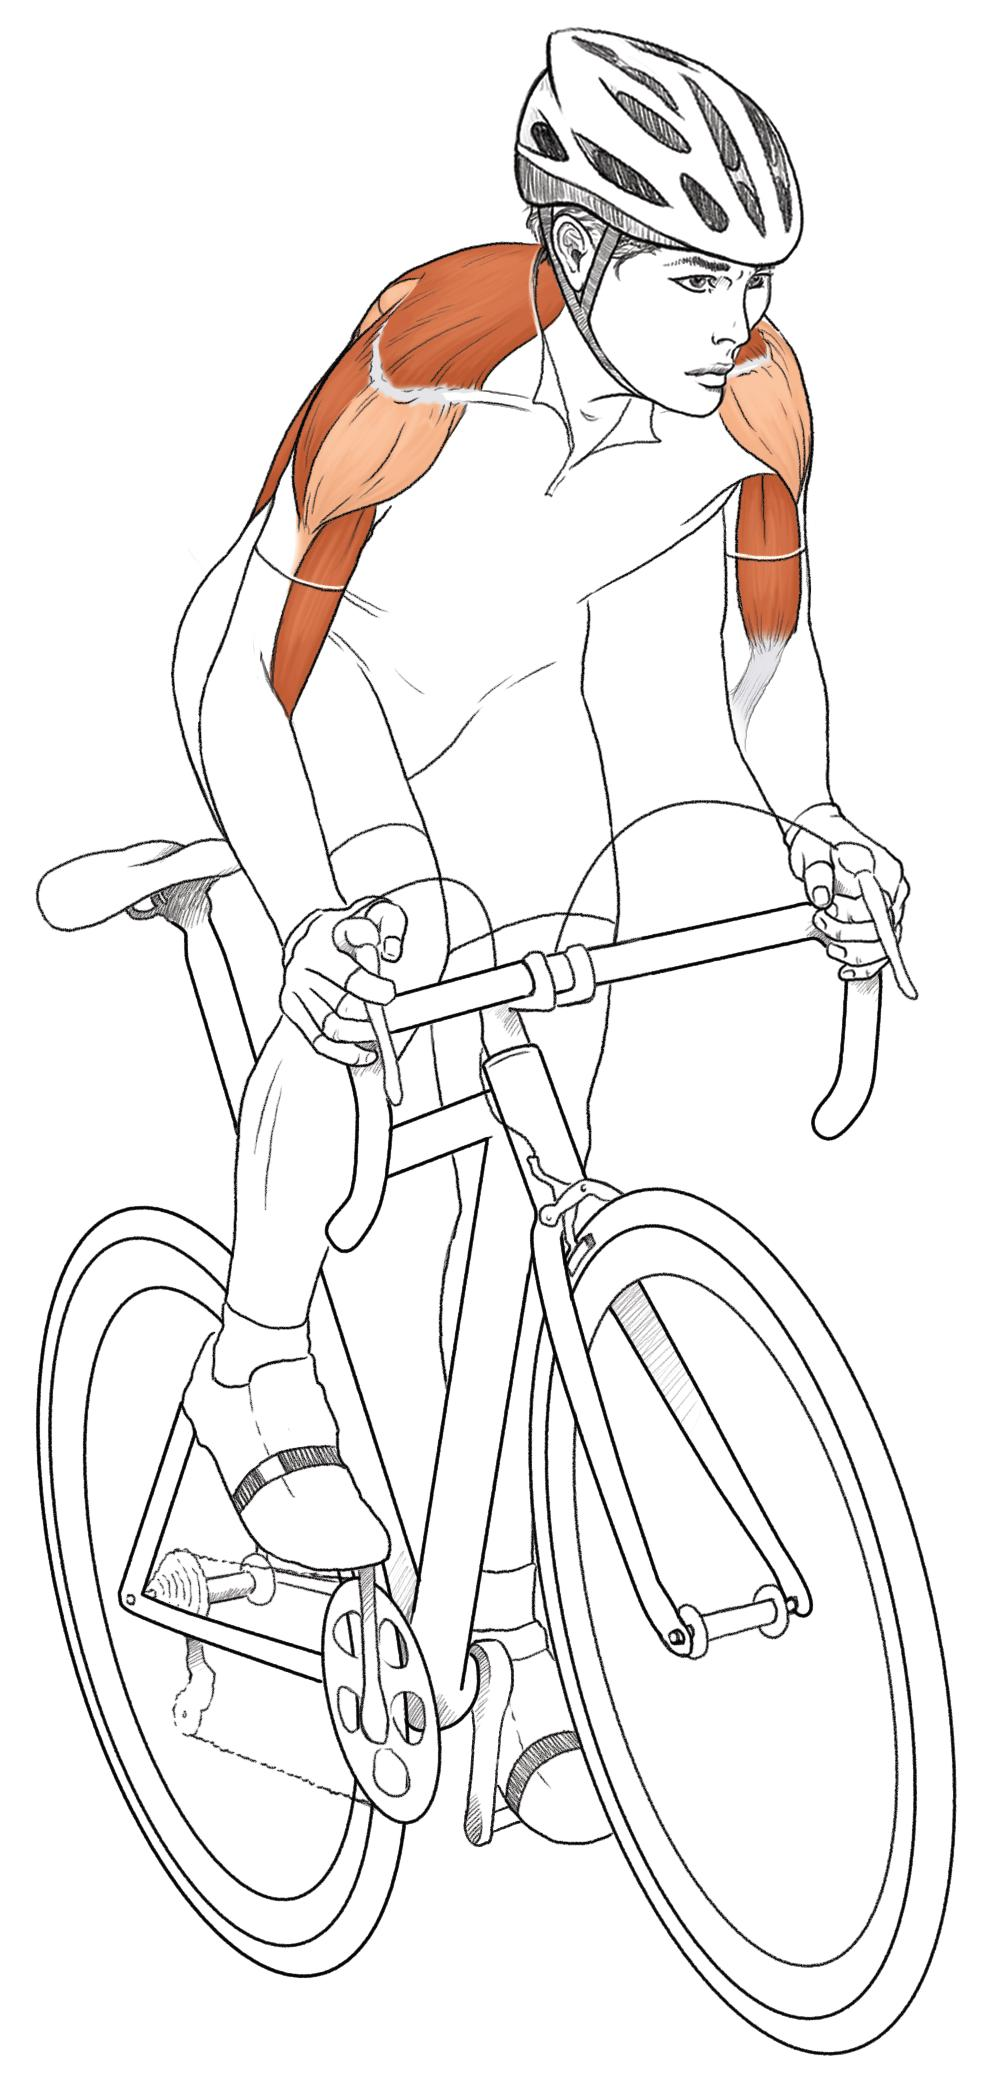 Cycling Anatomy Depicted in New Book: Illustrations Show How Body ...